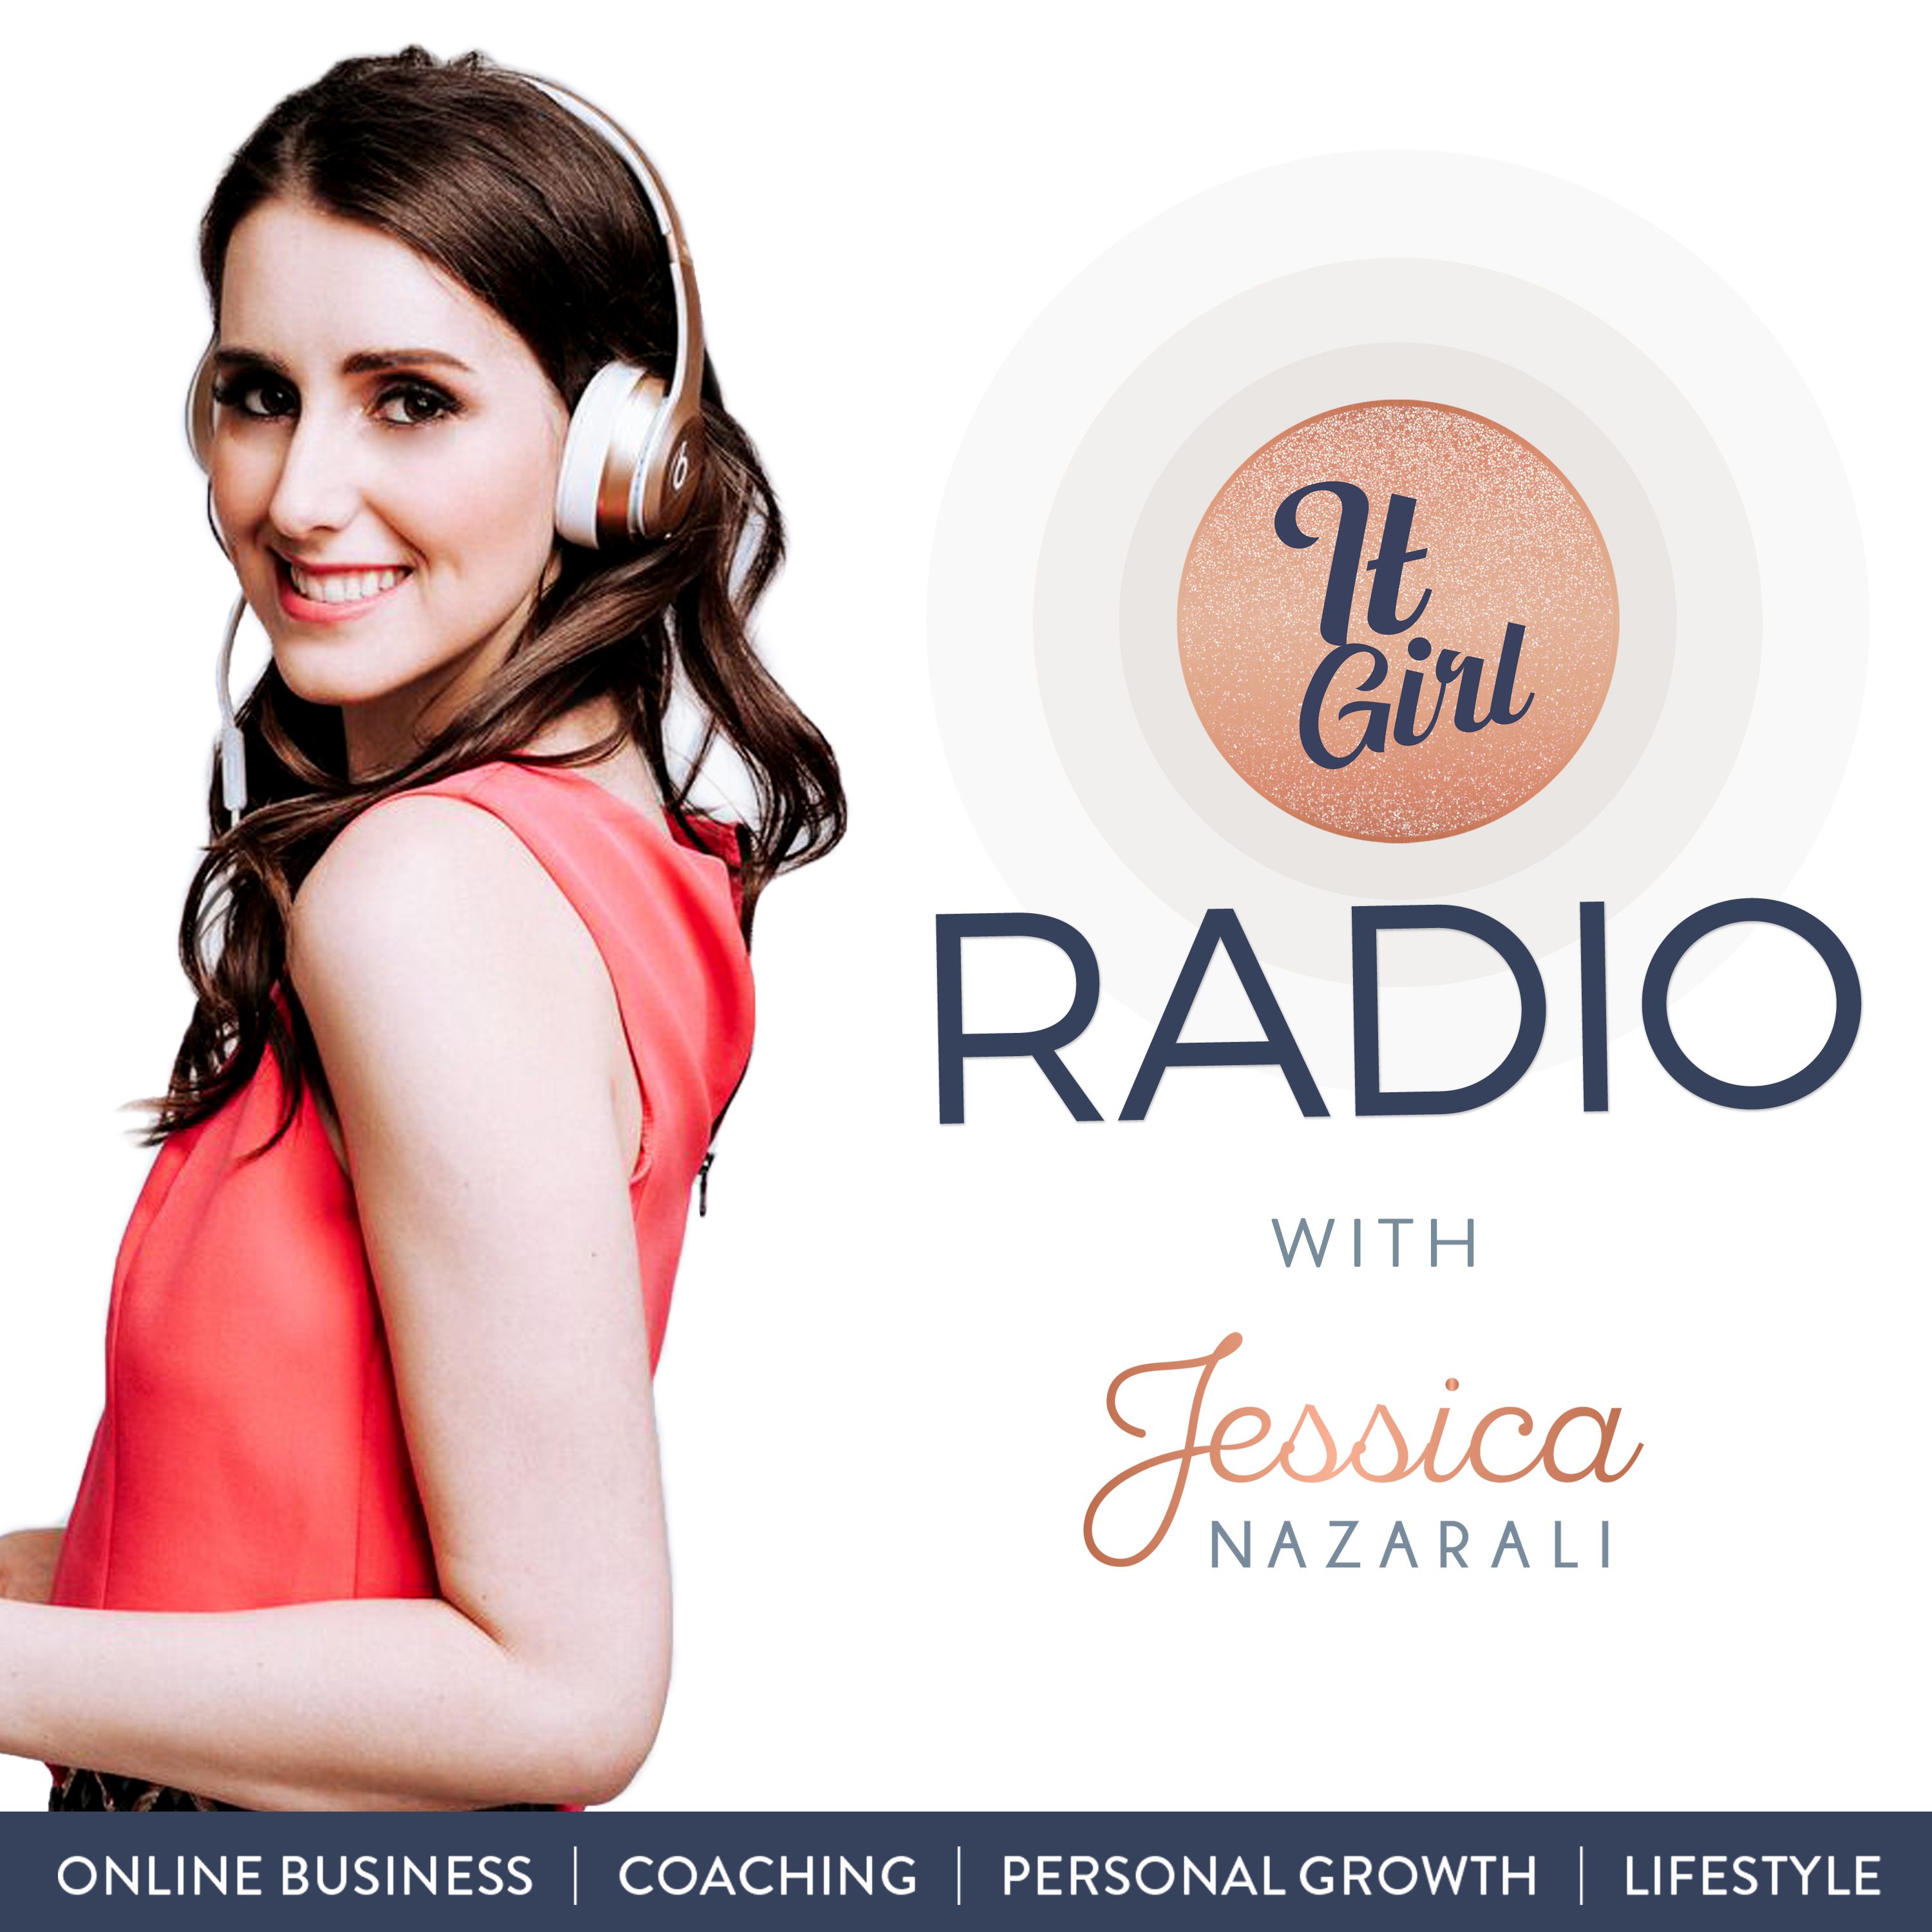 It Girl Radio Podcast - Listen, Reviews, Charts - Chartable